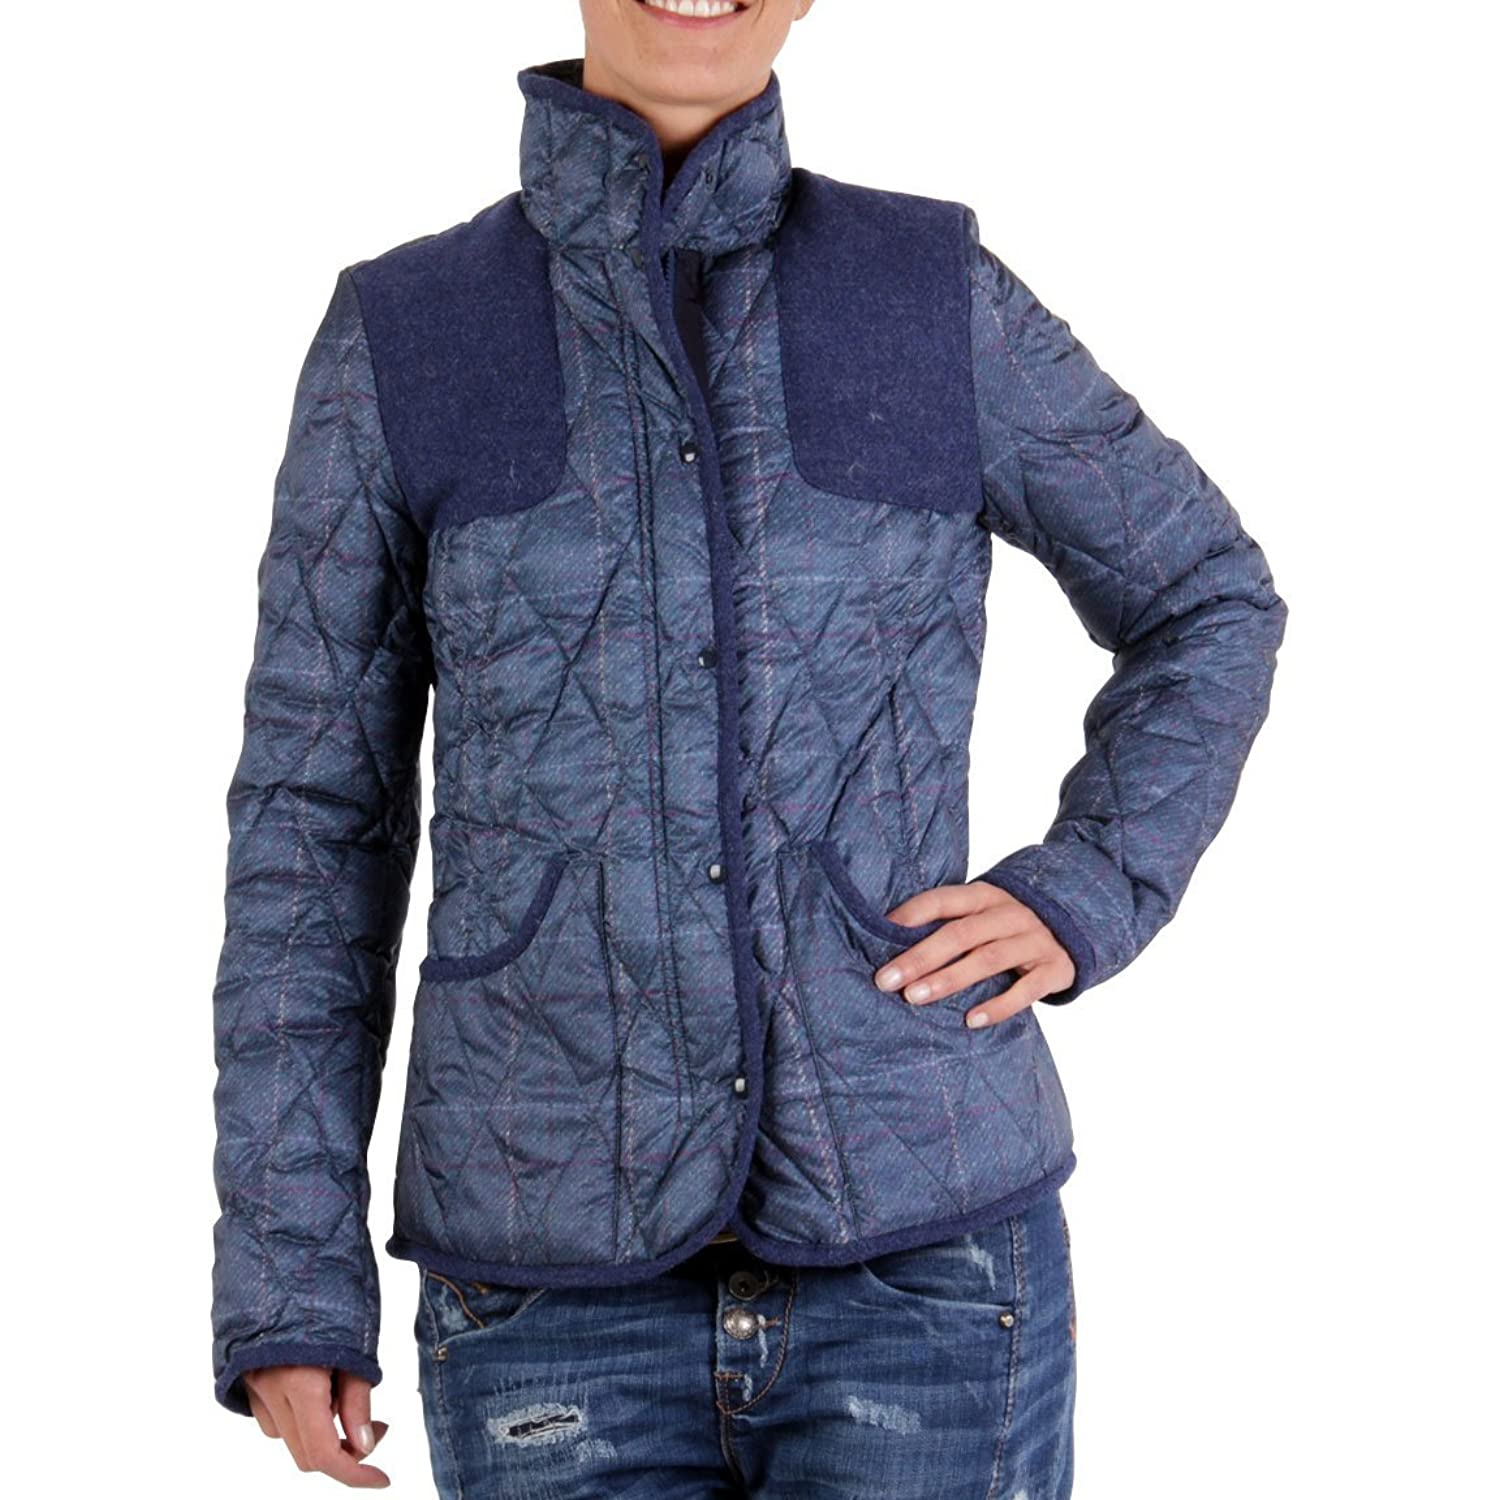 BPD by Blauer USA Damen Daunenjacke Blue BPD0030